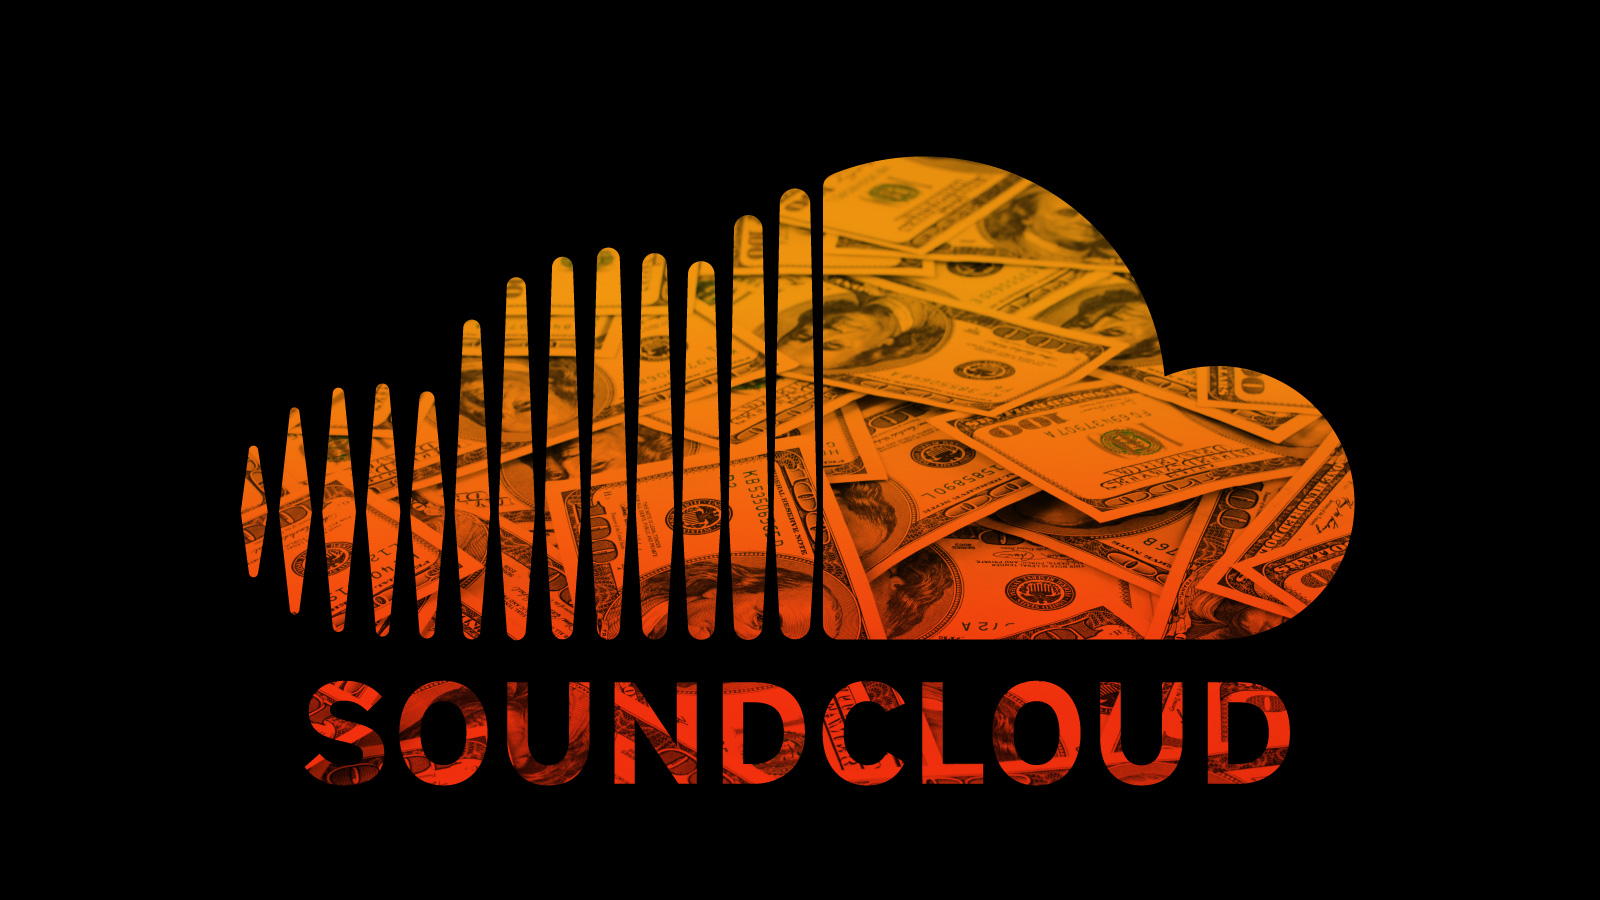 SoundCloud Saved From Closure By $170 Million Investment